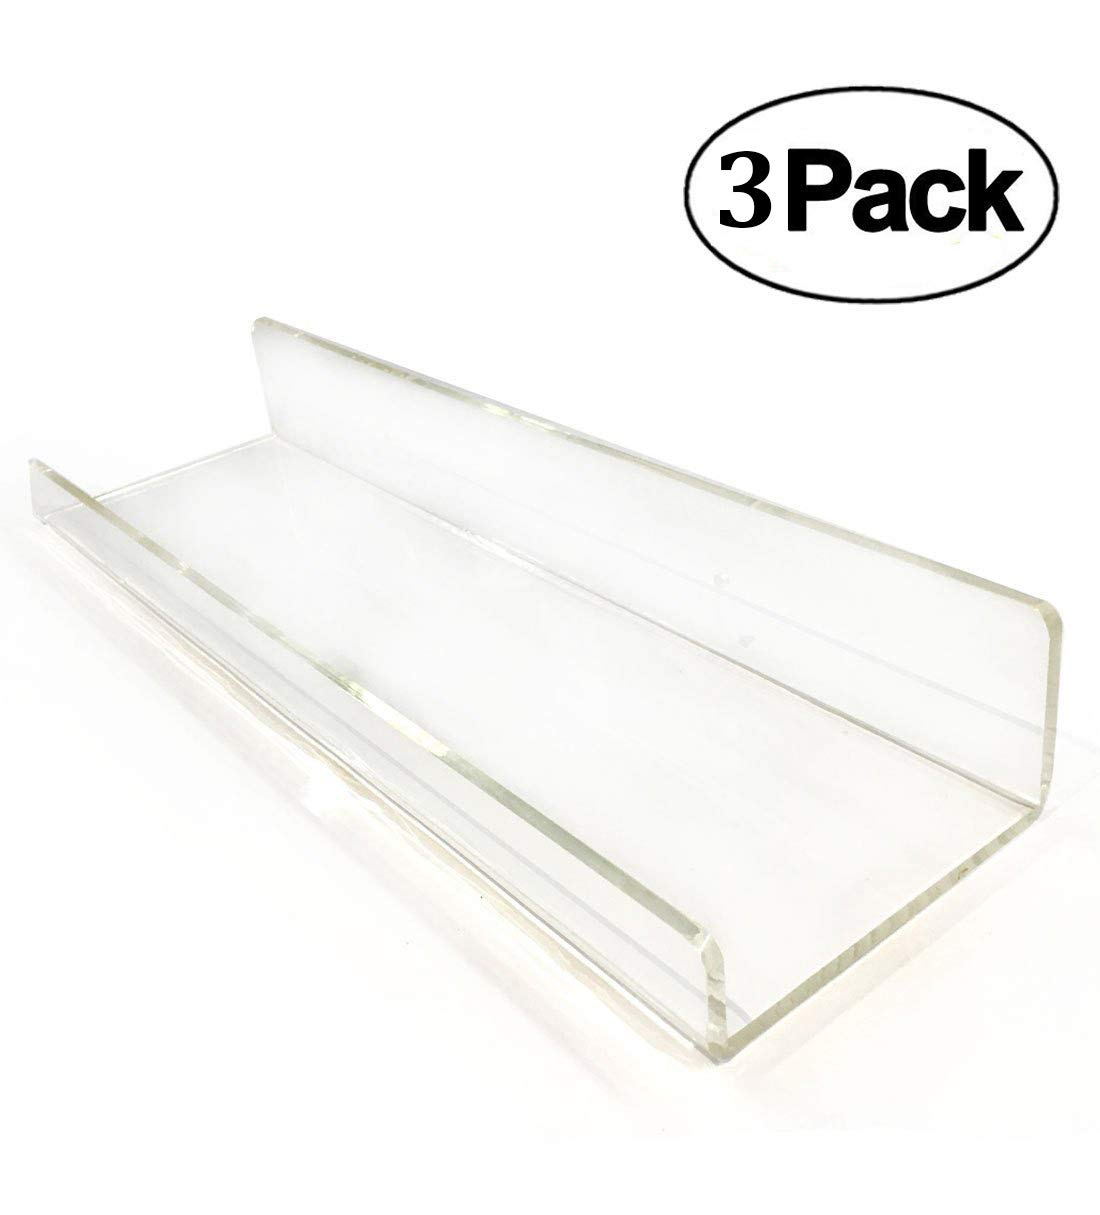 2 Clear Floating Shelves - Acrylic Bathroom Shelf Set, Corner Shower Caddy, Nail Polish Organizer Cosmetics Makeup or Spice Rack, Kids Room Non Wooden Wall Decor Hanging Bookshelf Display EXTRA STRONG BlingSoul JBS-2ACRLC15X2